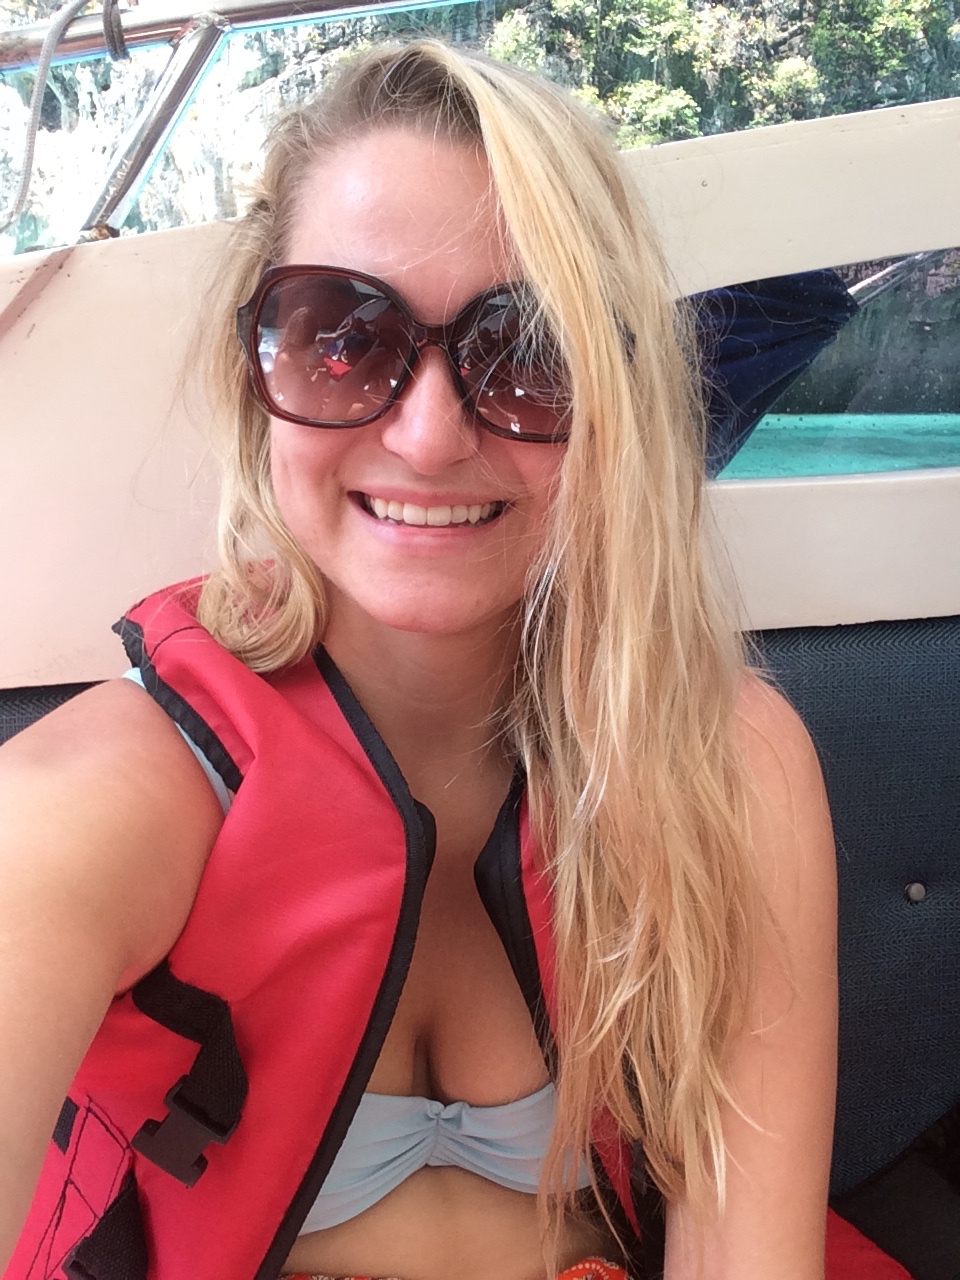 On the boat headed to the Phi Phi islands wearing this gorgeous life jacket!